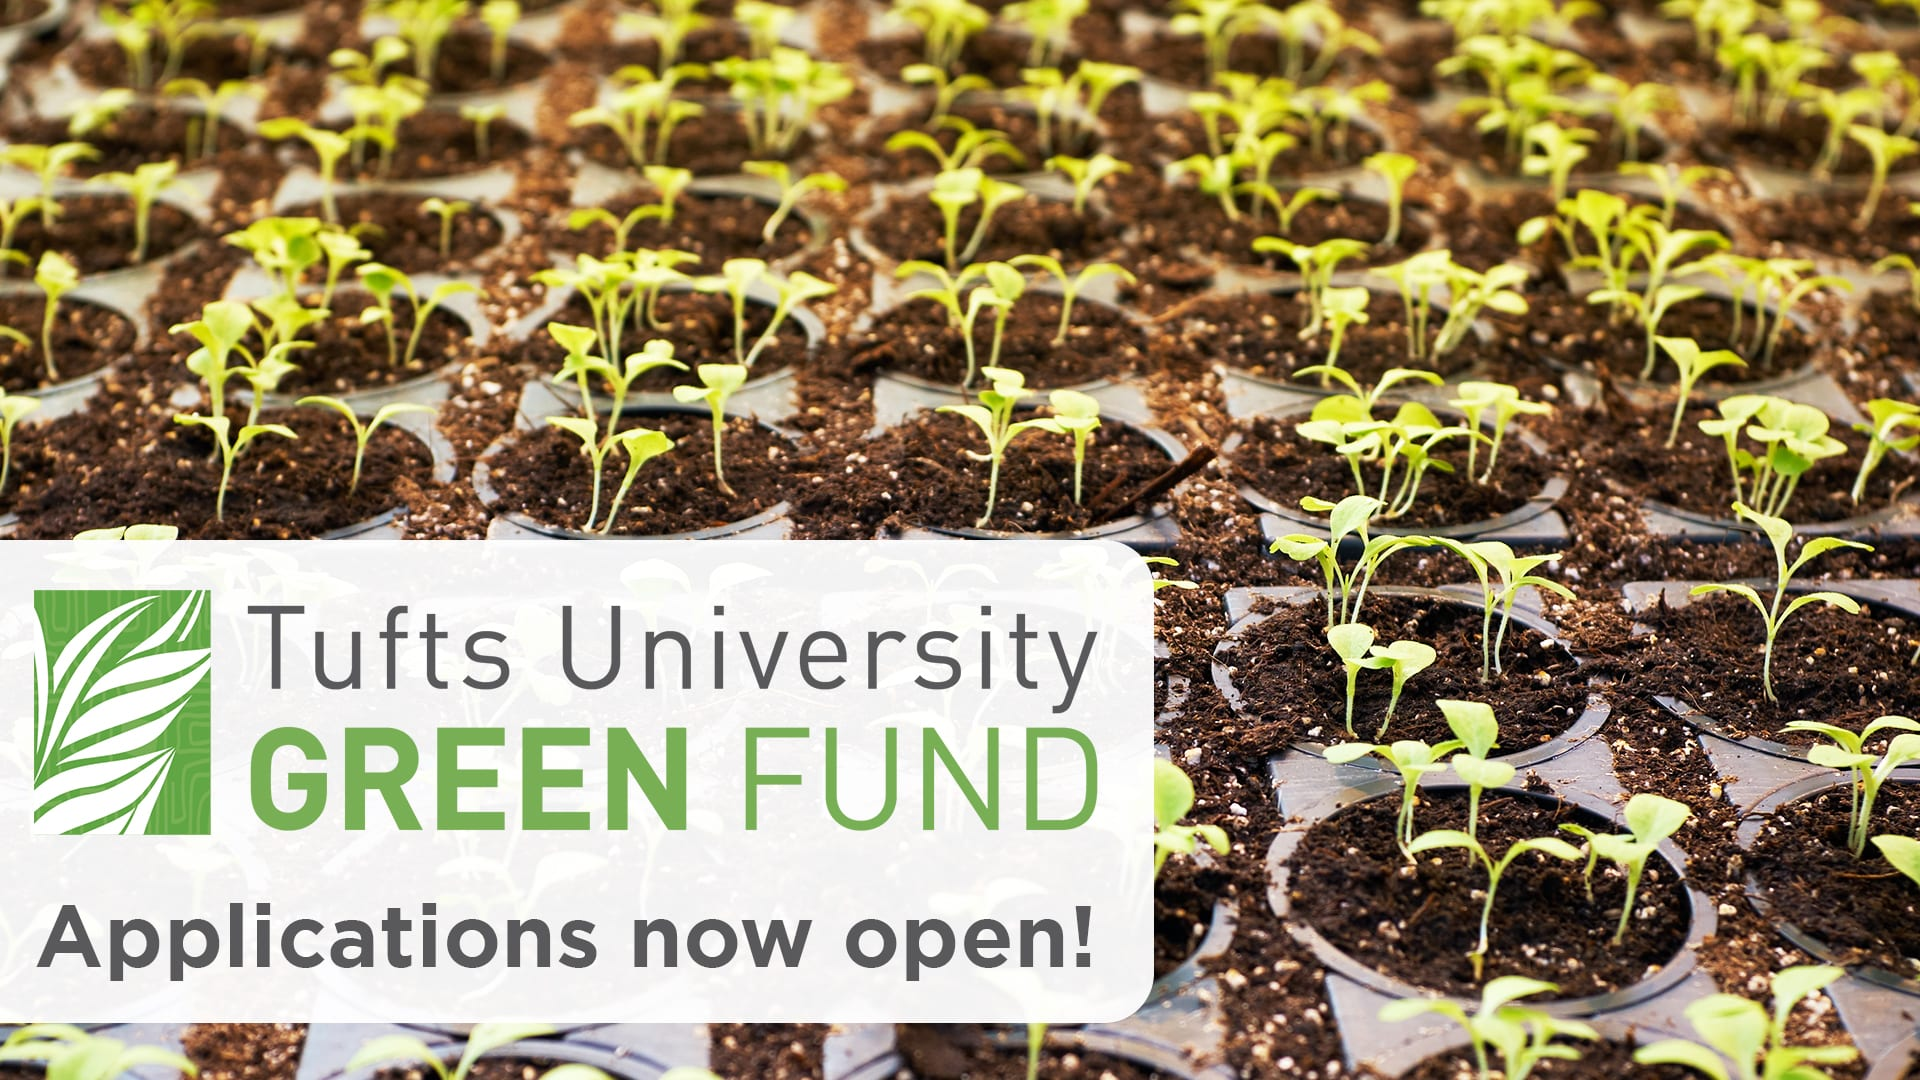 Green Fund Applications Now Open